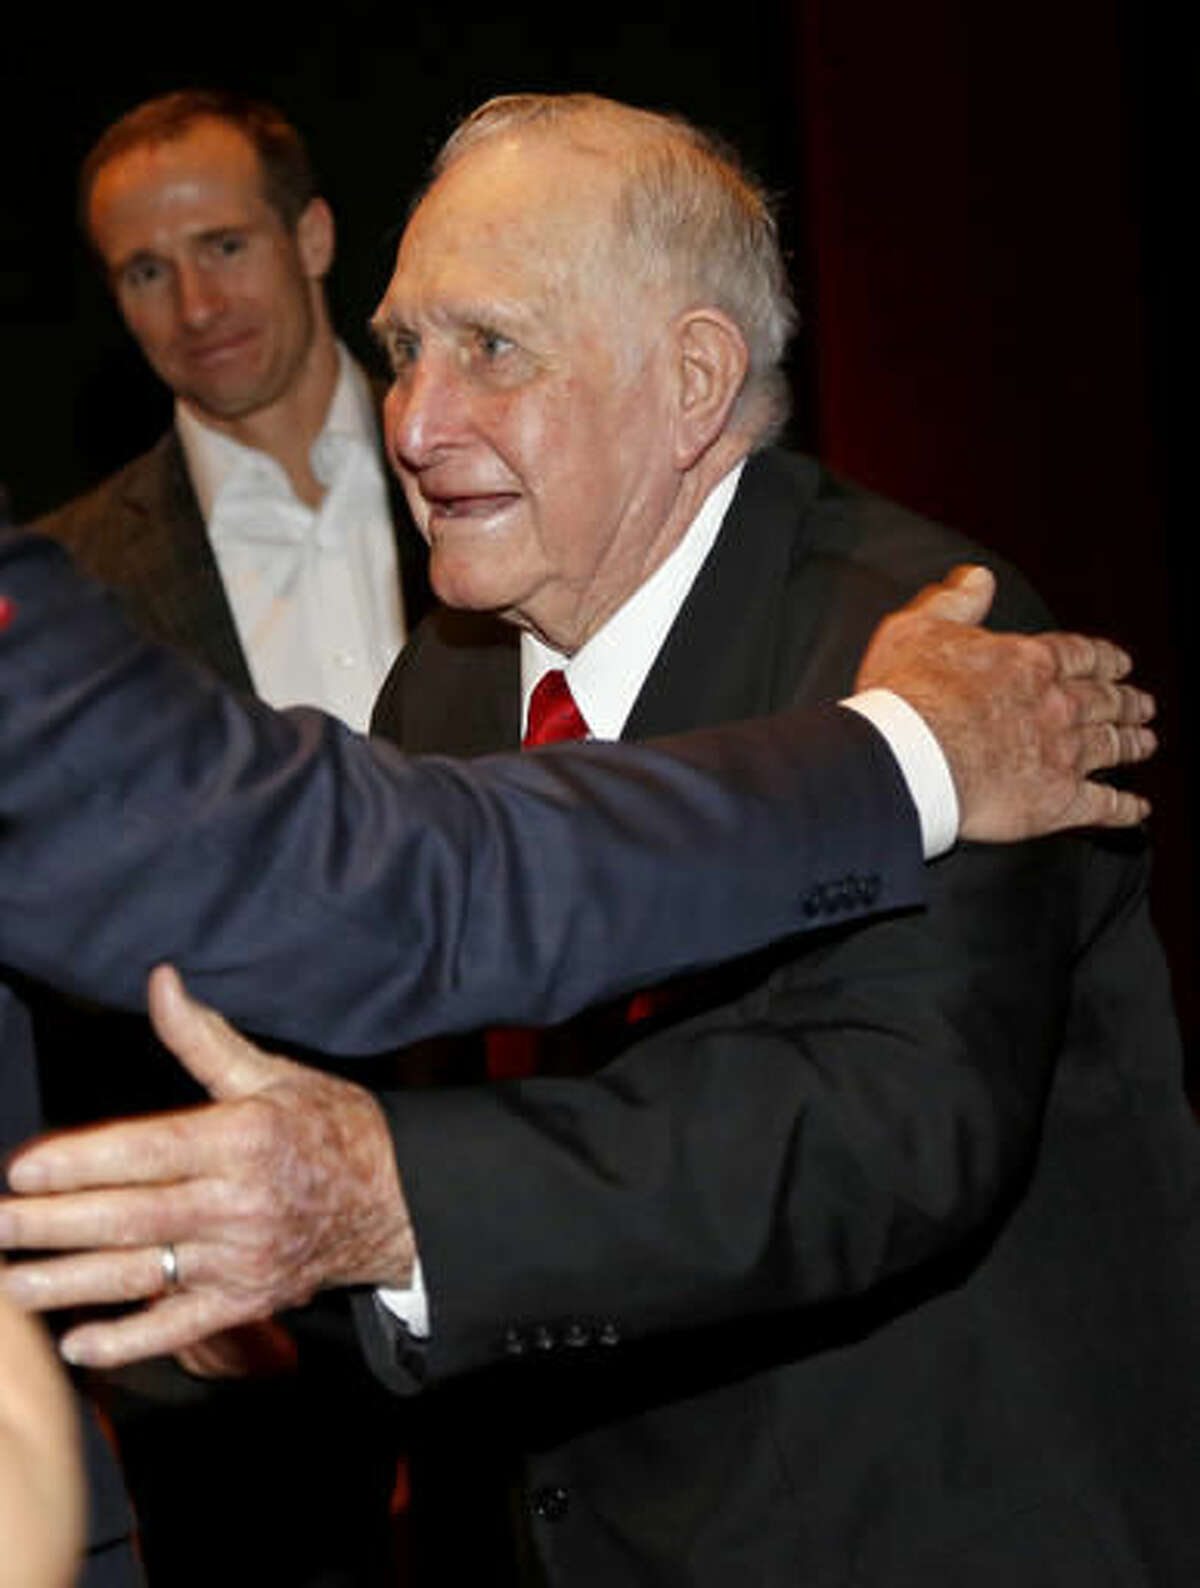 """World War II veteran Robert Akins is recognized by the audience during a screening of the movie """"Hacksaw Ridge"""" at The National WWII Museum, in New Orleans, Wednesday, Oct. 26, 2016. Akins is the grandfather of New Orleans Saints quarter back Drew Brees, seen in background. (AP Photo/Max Becherer)"""